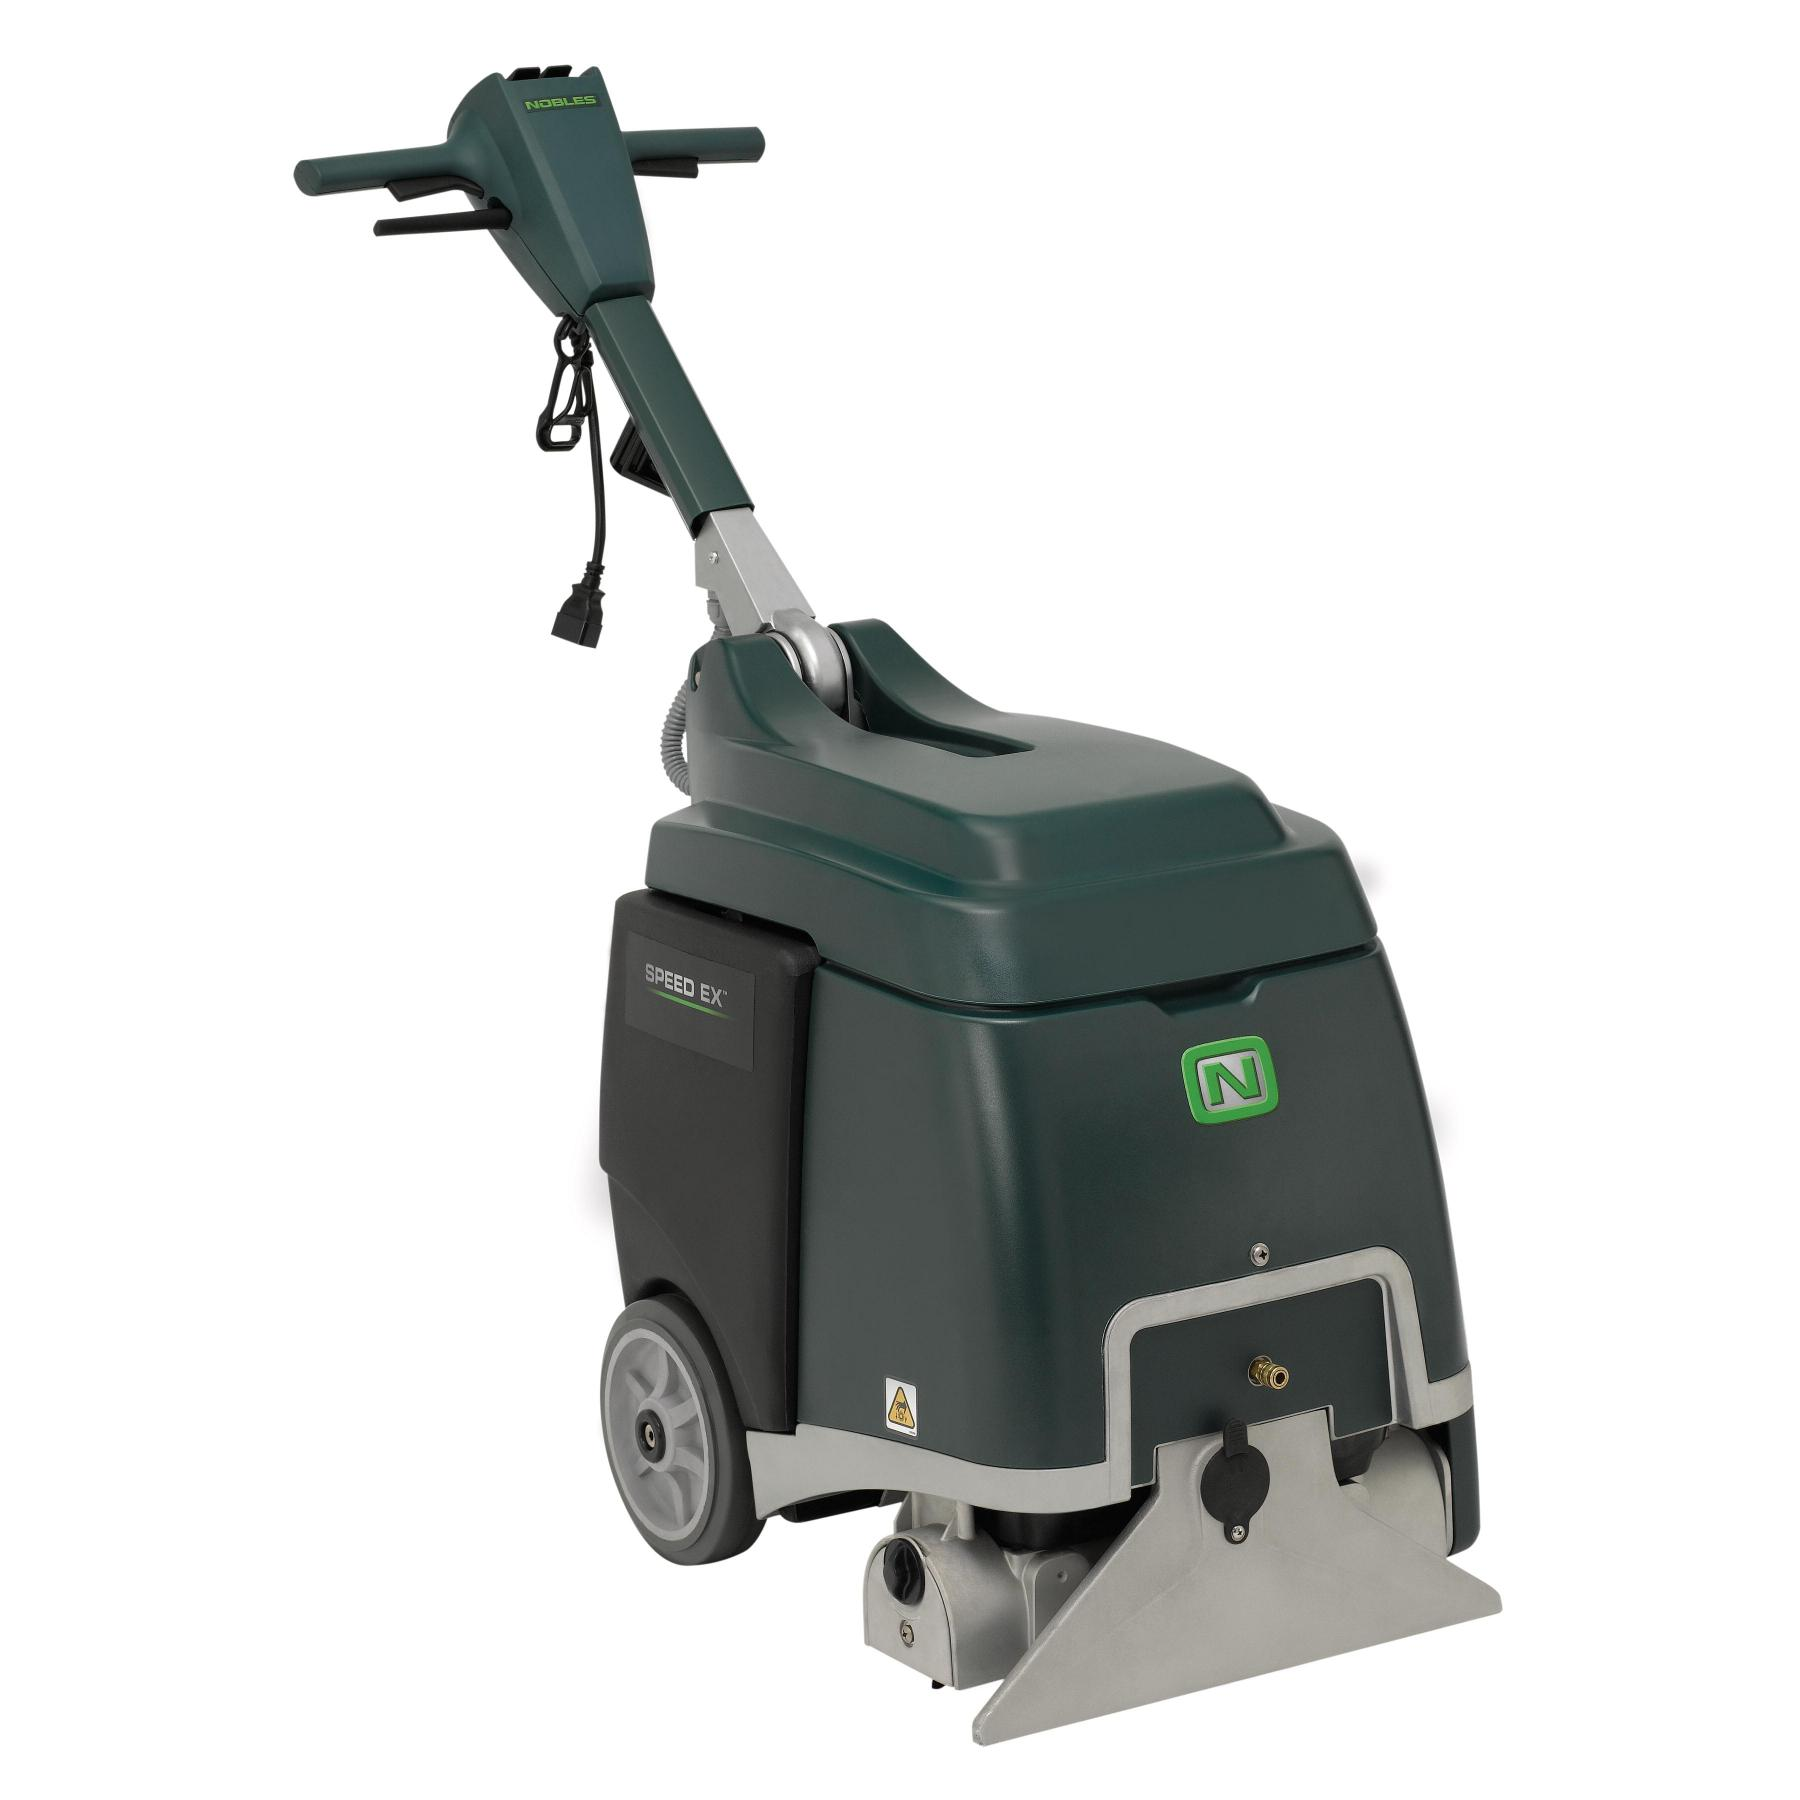 Buy a Deep Carpet Cleaner machine today and get a versatile cleaner with 75% more suction that deep cleans, grooms and polishes your carpet. One of Rug Doctor's best carpet cleaners for deep carpet cleaning. View more product details here.